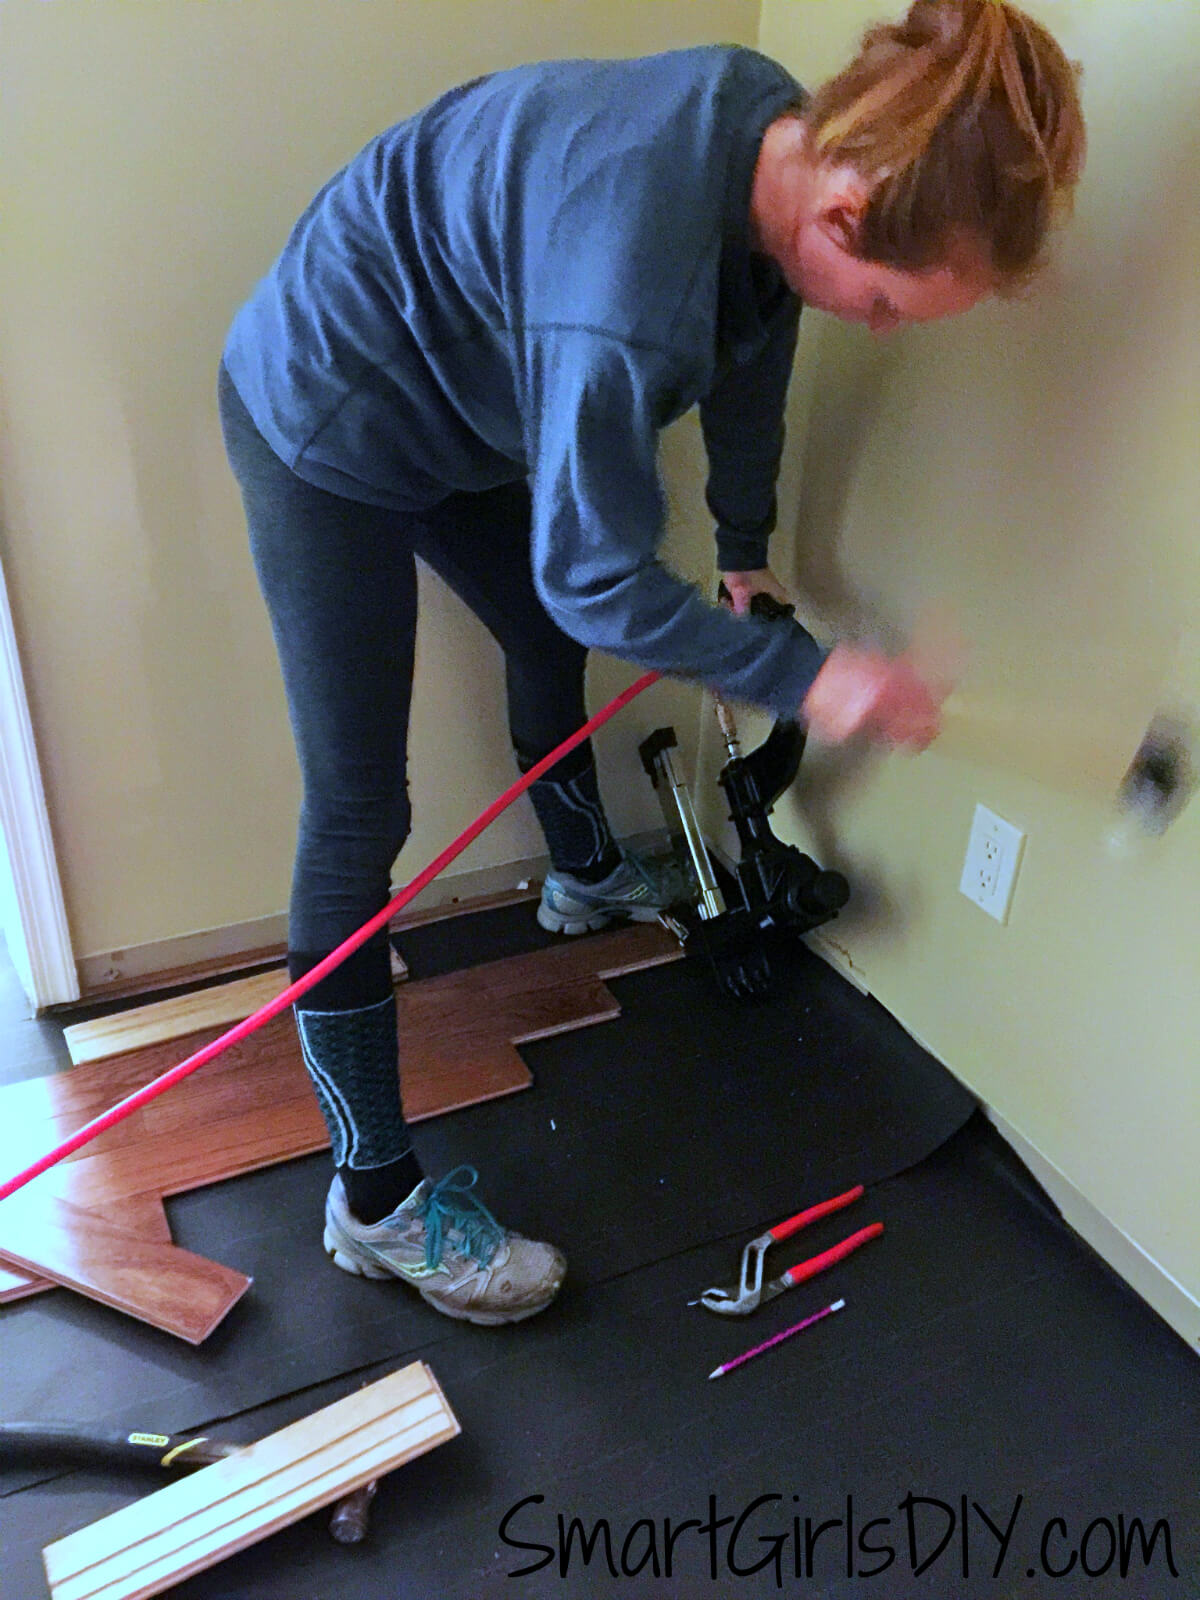 How to install baseboards over carpet - Over Hardwood Flooring 9 S How To Install Wall Carpet Tos Diy Should I Install My Own Carpet Carpet Sferakino